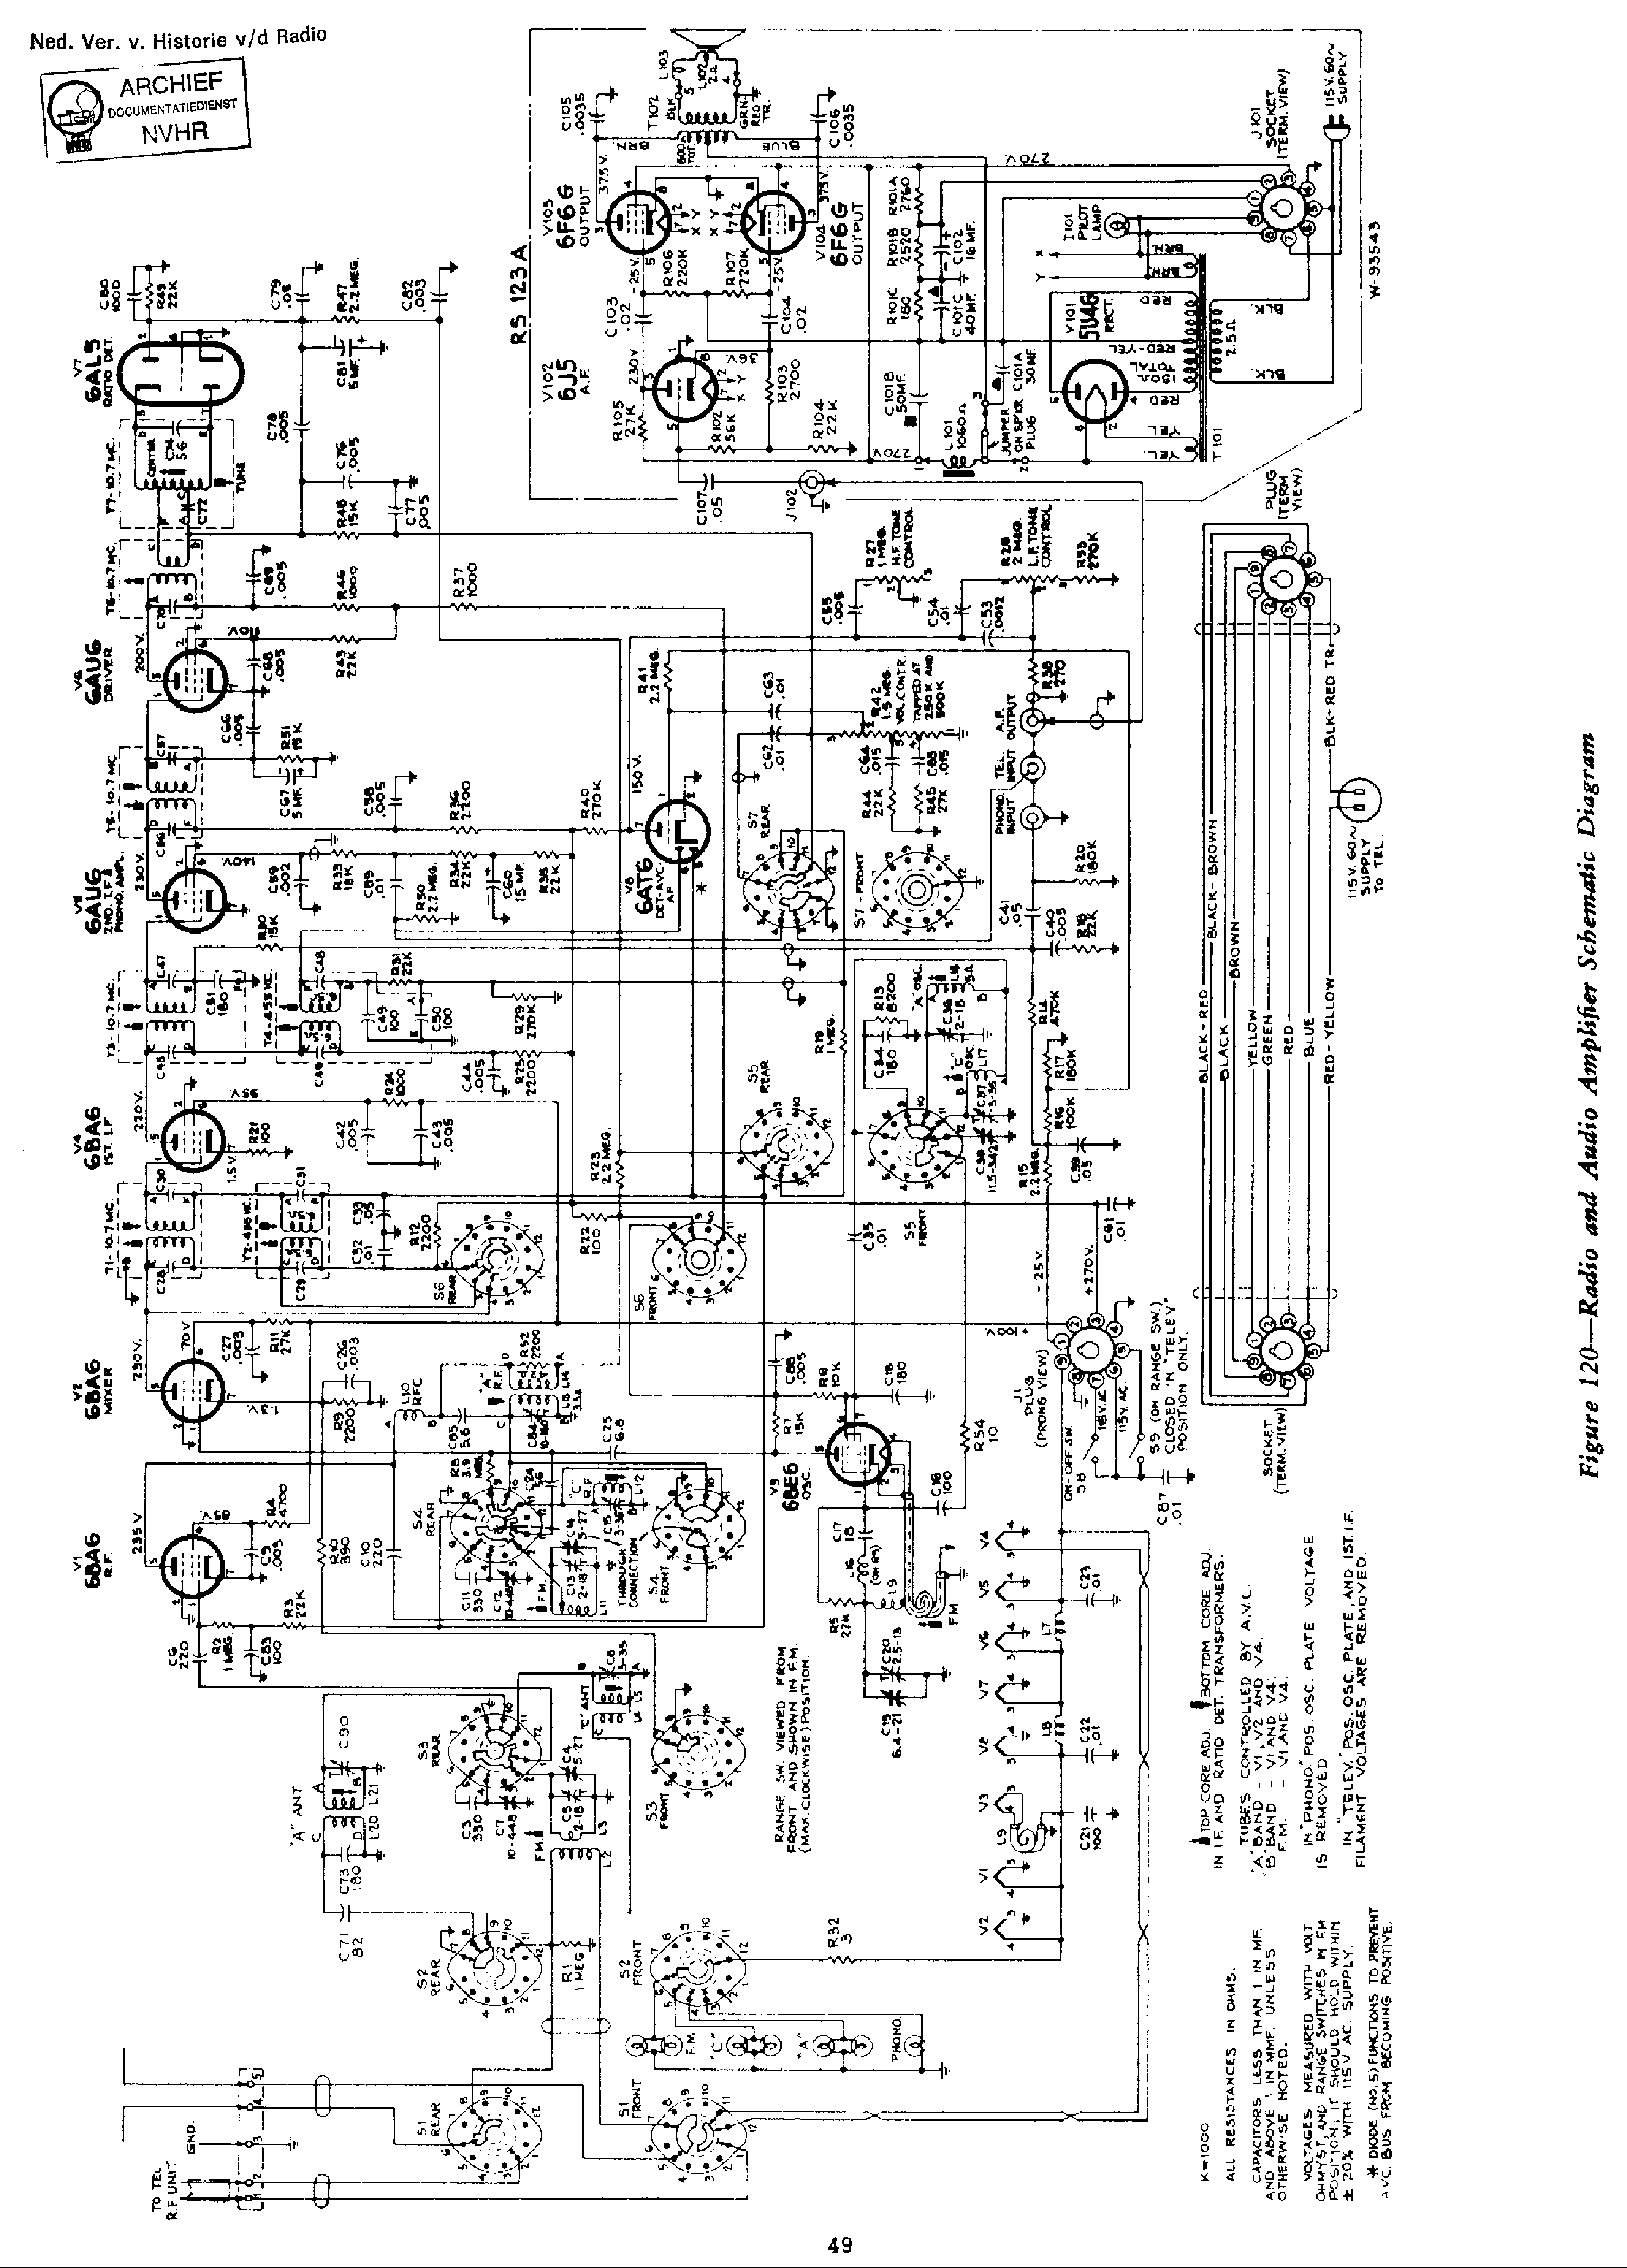 Rca Rs 51 Service Manual Download Schematics Eeprom